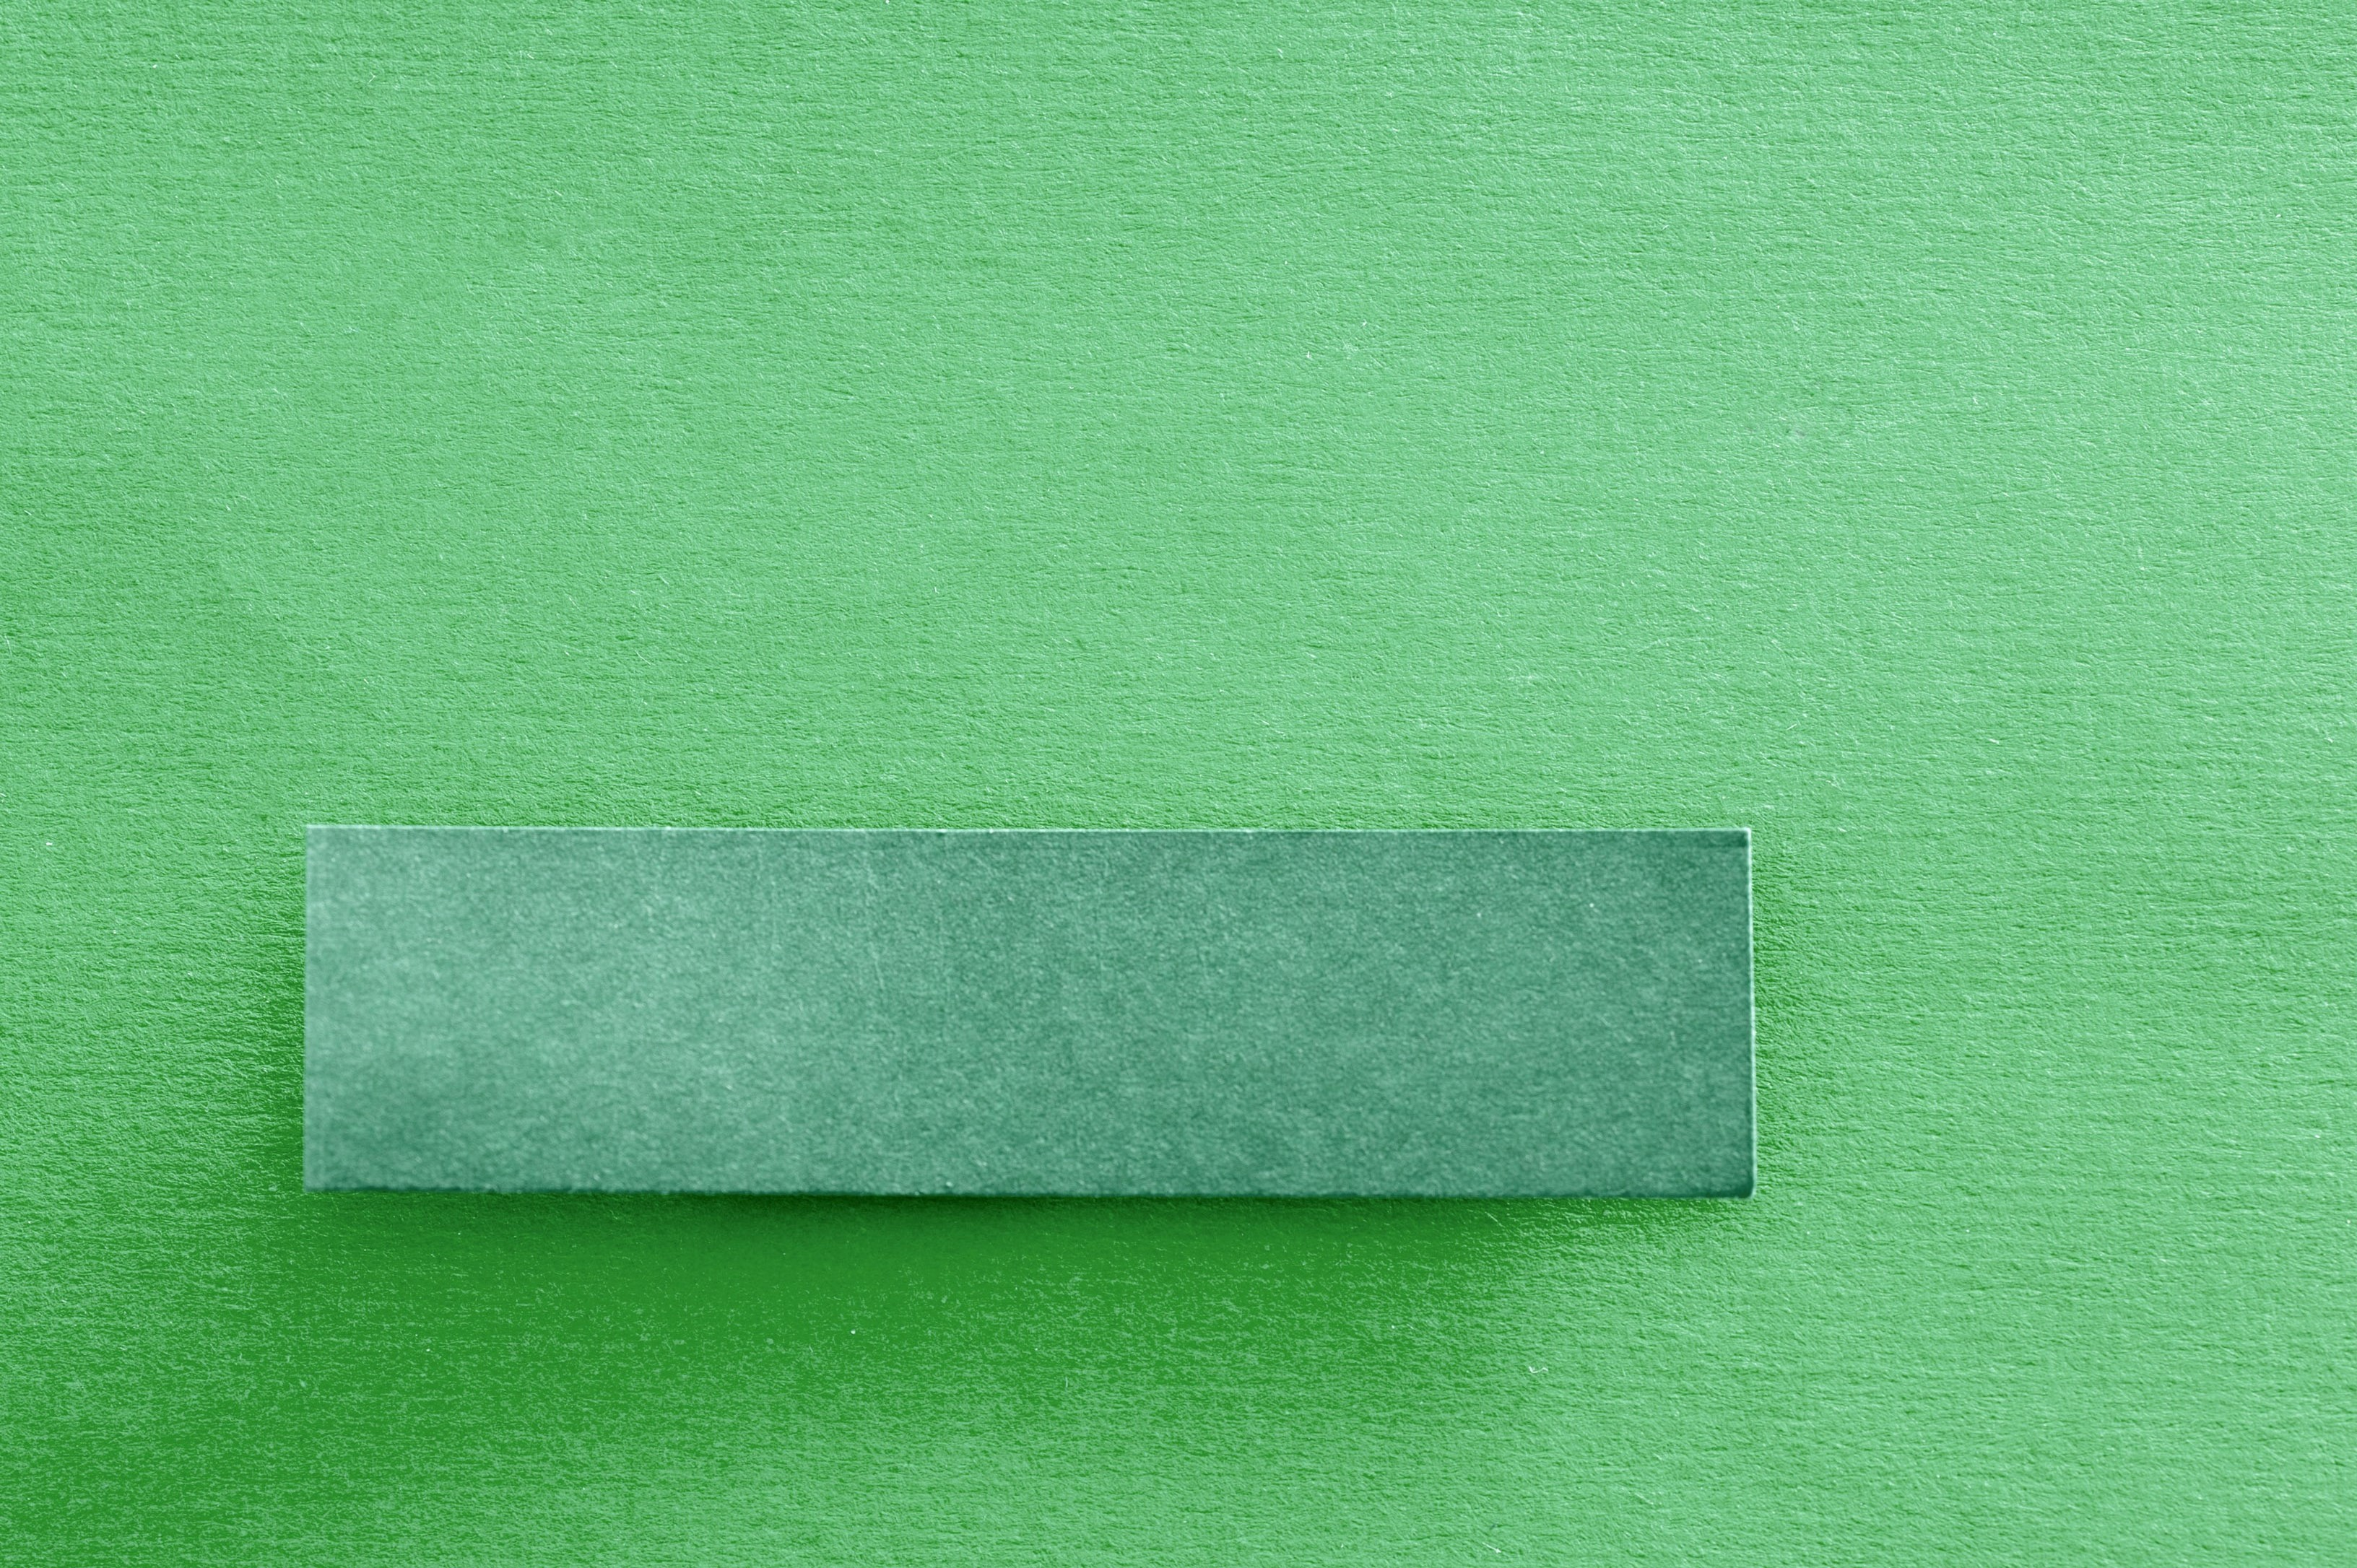 a green textured paper label on green background